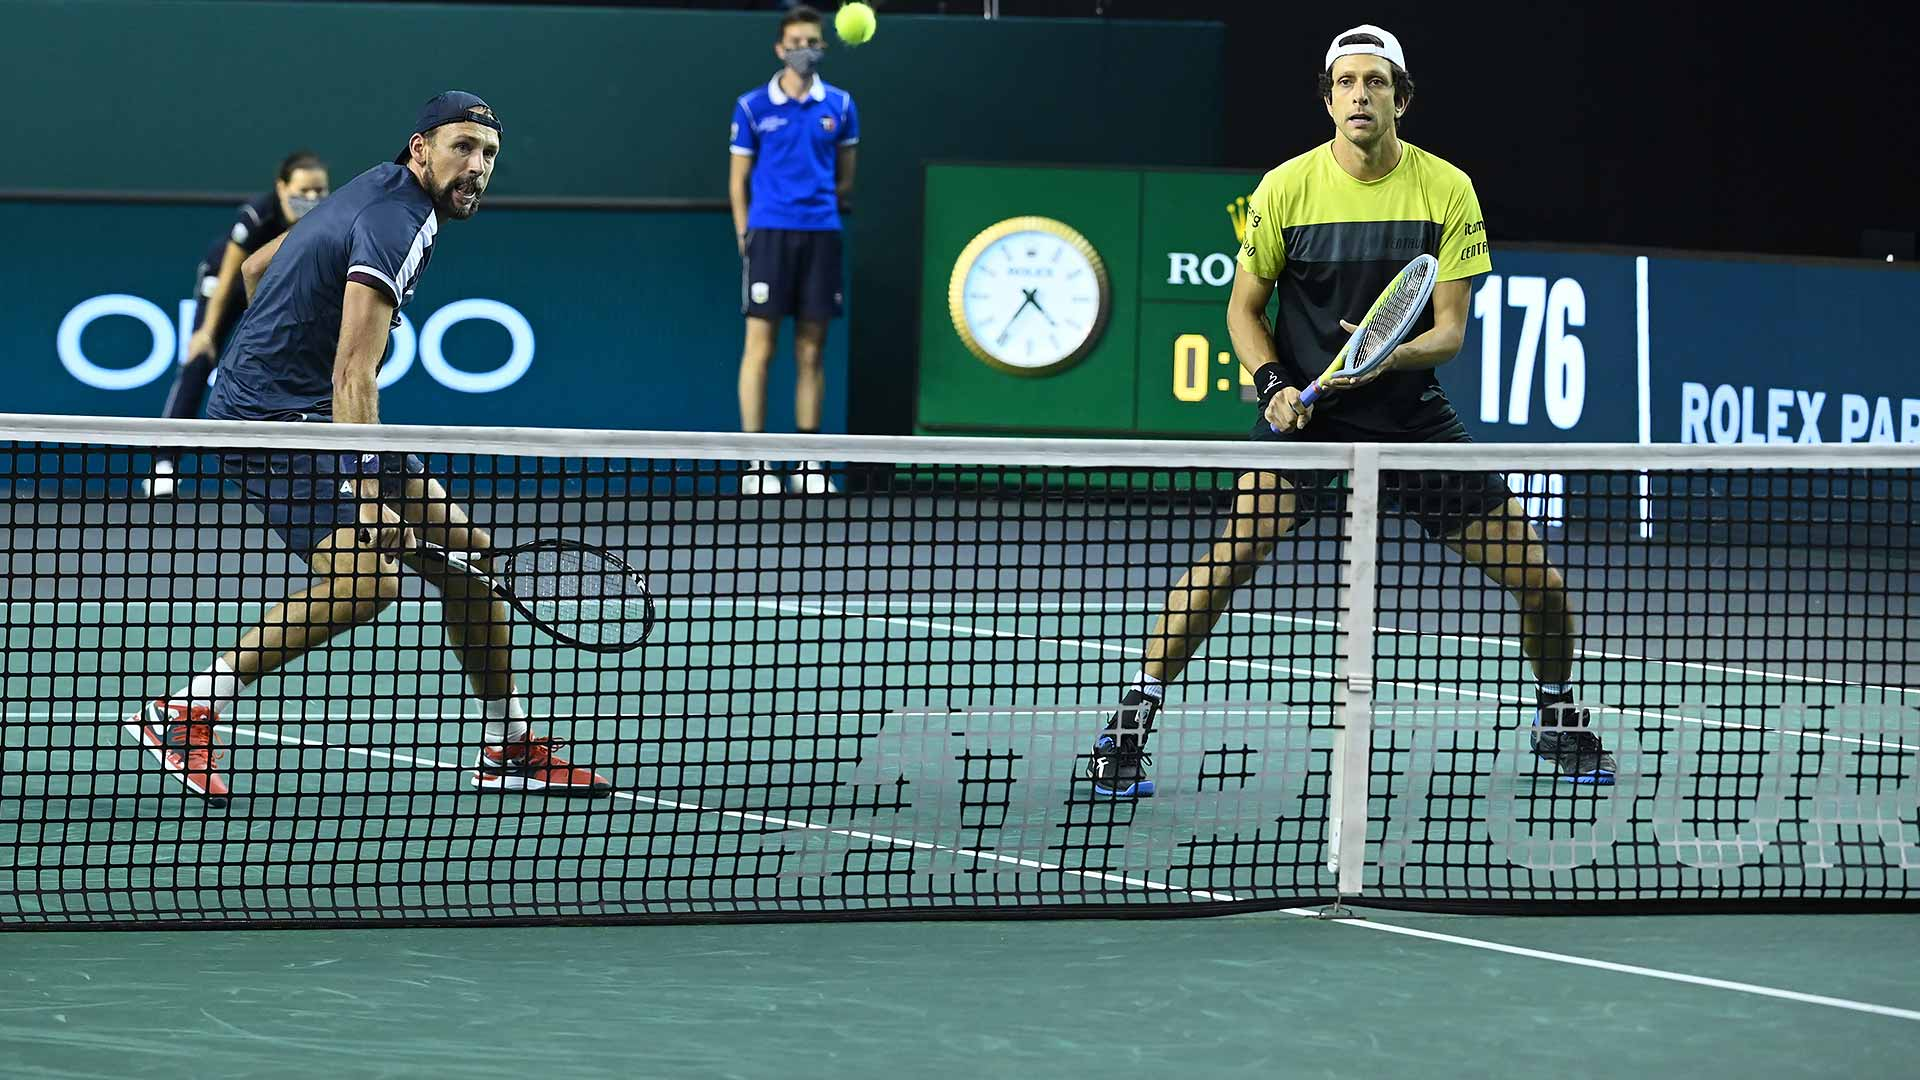 Lukasz Kubot and Marcelo Melo oust defending champions Pierre-Hugues Herbert and Nicolas Mahut in the Paris quarter-finals.